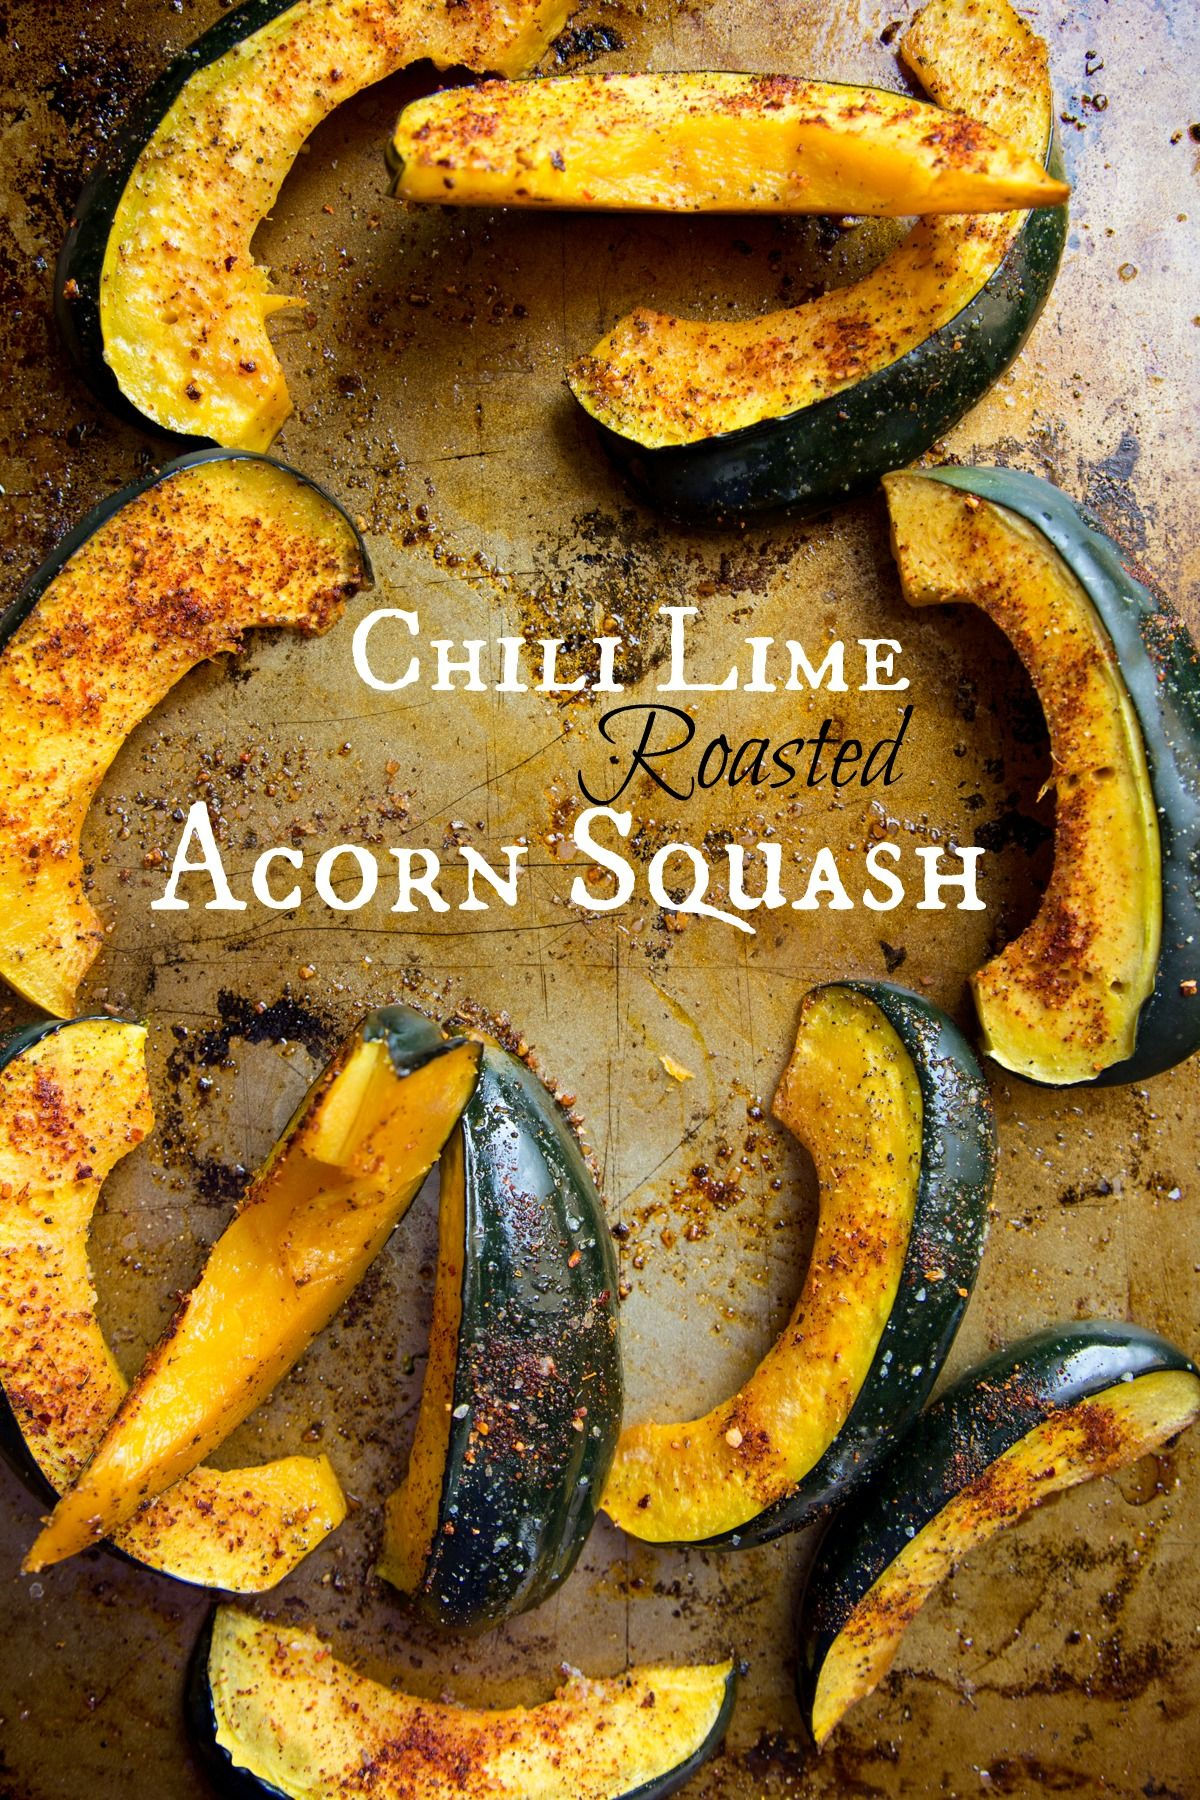 Chili Lime Roasted Acorn Squash With Images Acorn Squash